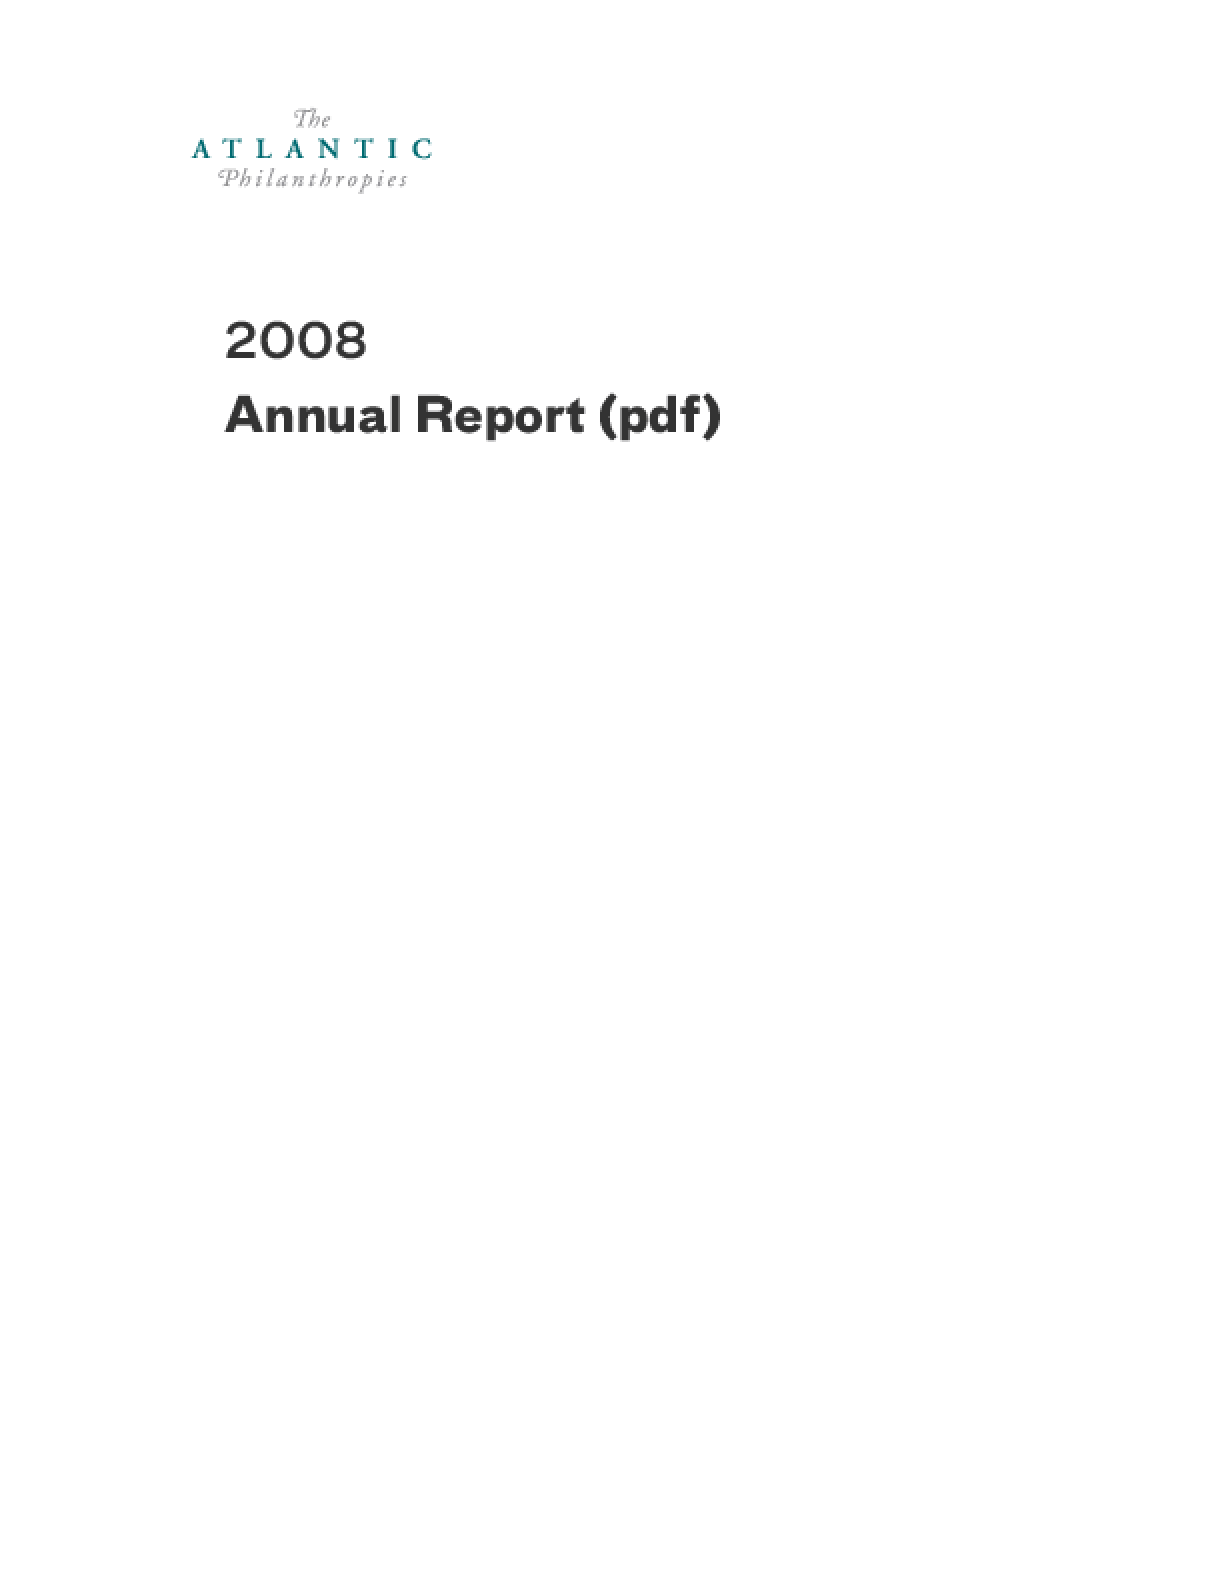 Atlantic Philanthropies - 2008 Annual Report